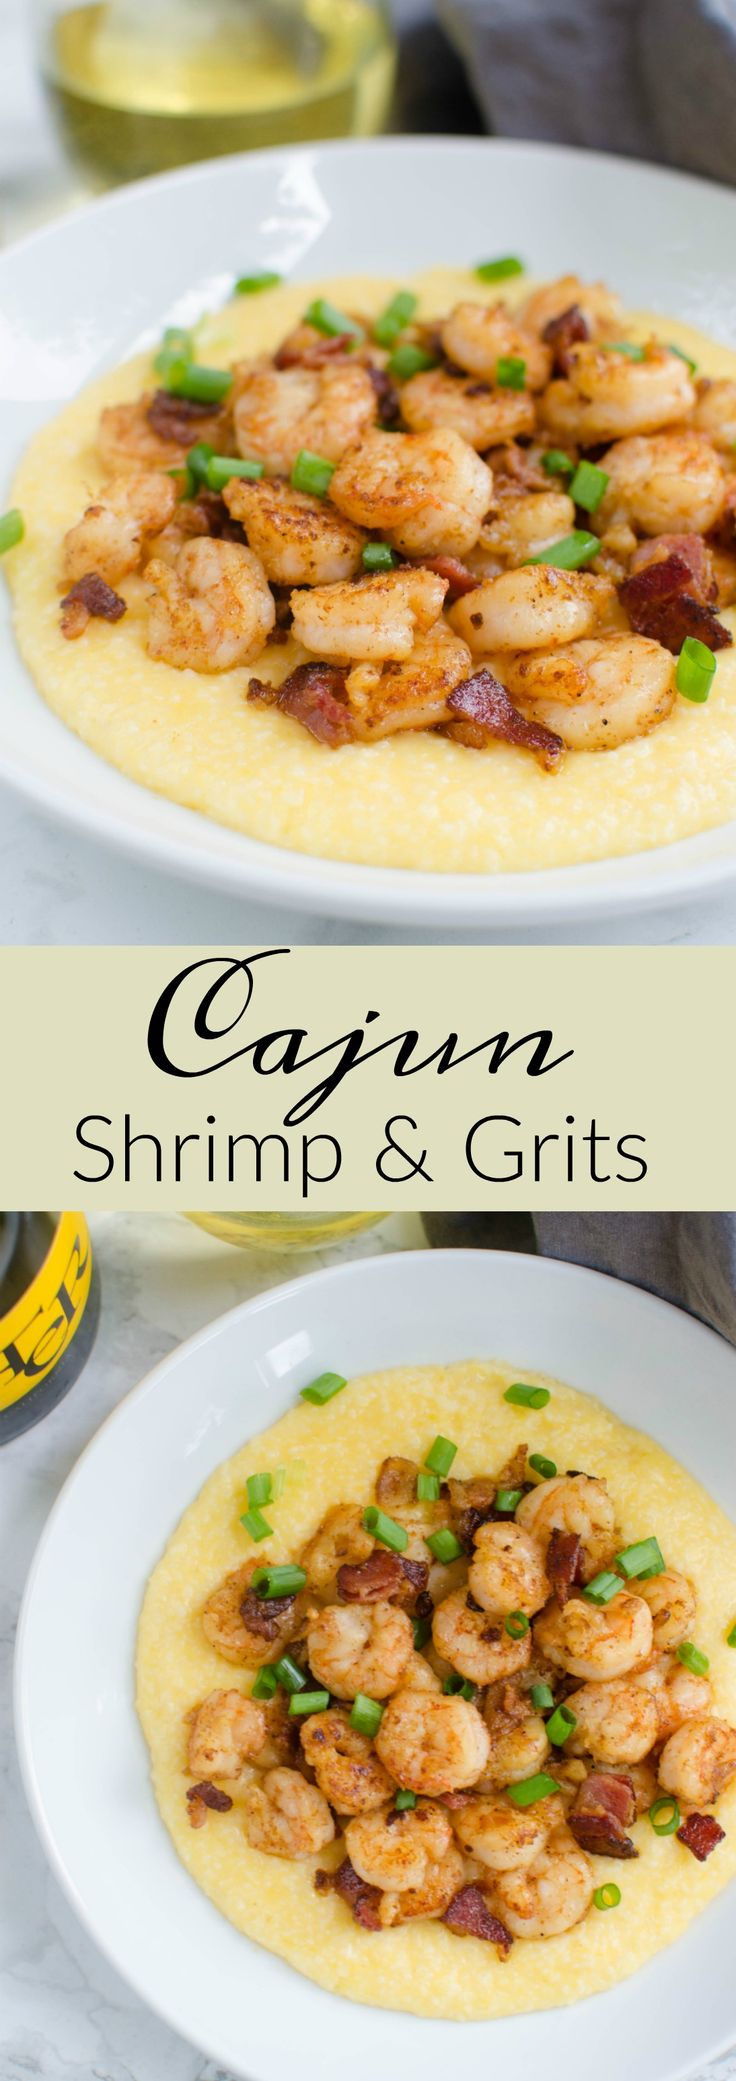 Cajun Shrimp and Grits - spicy shrimp with cheesy grits! Super simple recipe that feels very decadent. Perfect for brunch or a date night in!